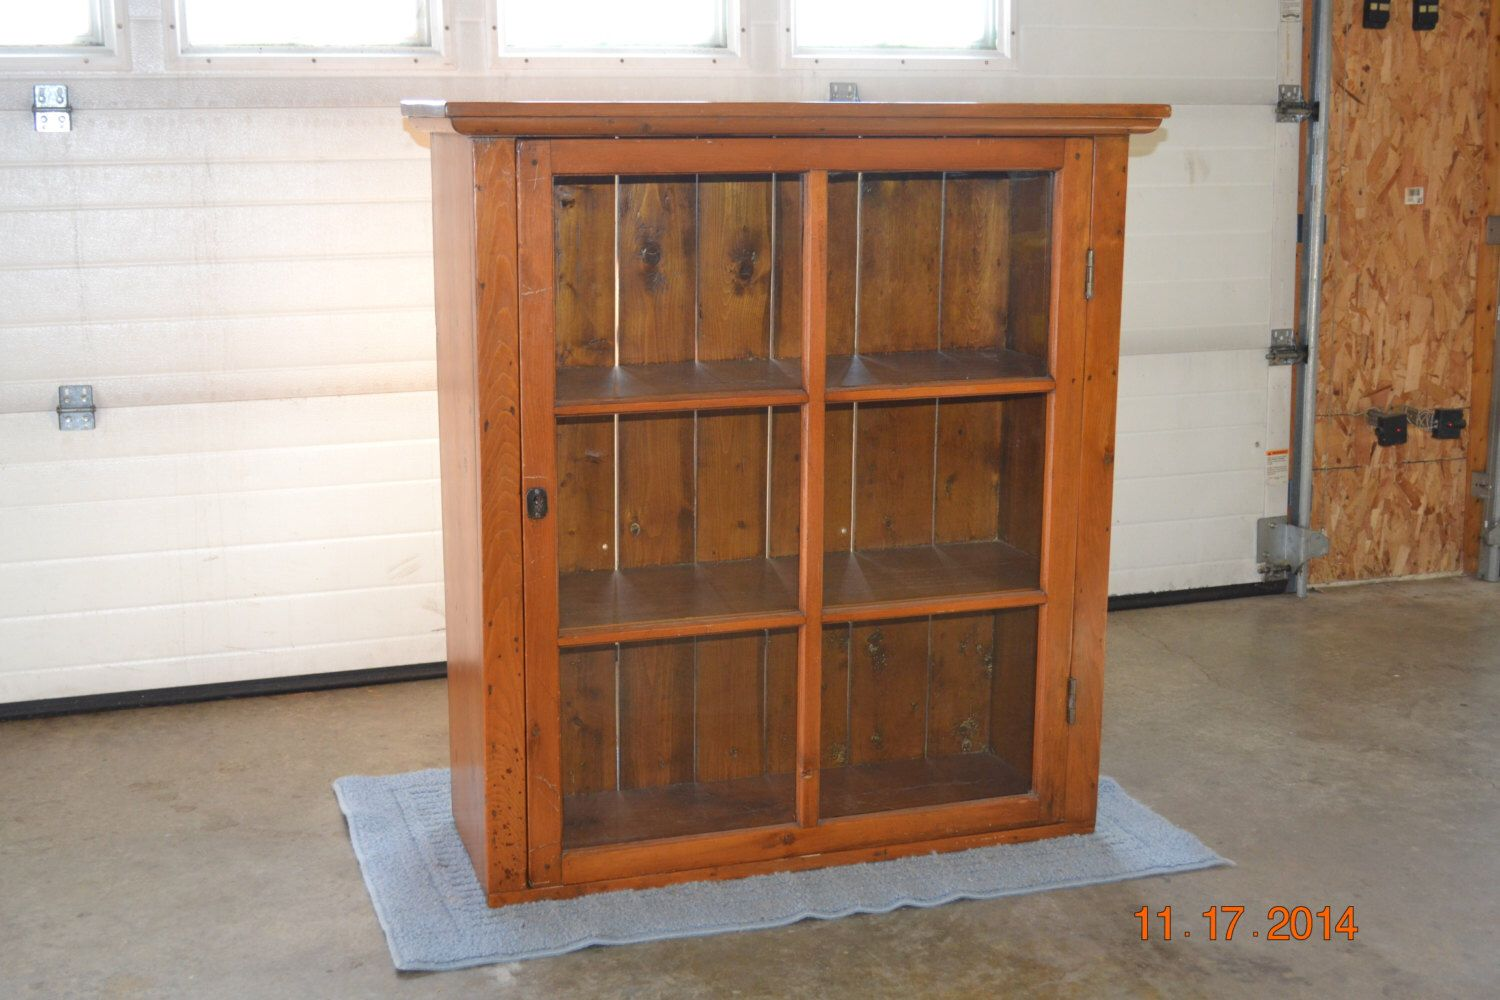 Primitive Antique Pine Cupboard Glass Front Early American Display Cabinet  Very Clean Sharp Antique! by - Primitive Antique Pine Cupboard Glass Front Early American Display